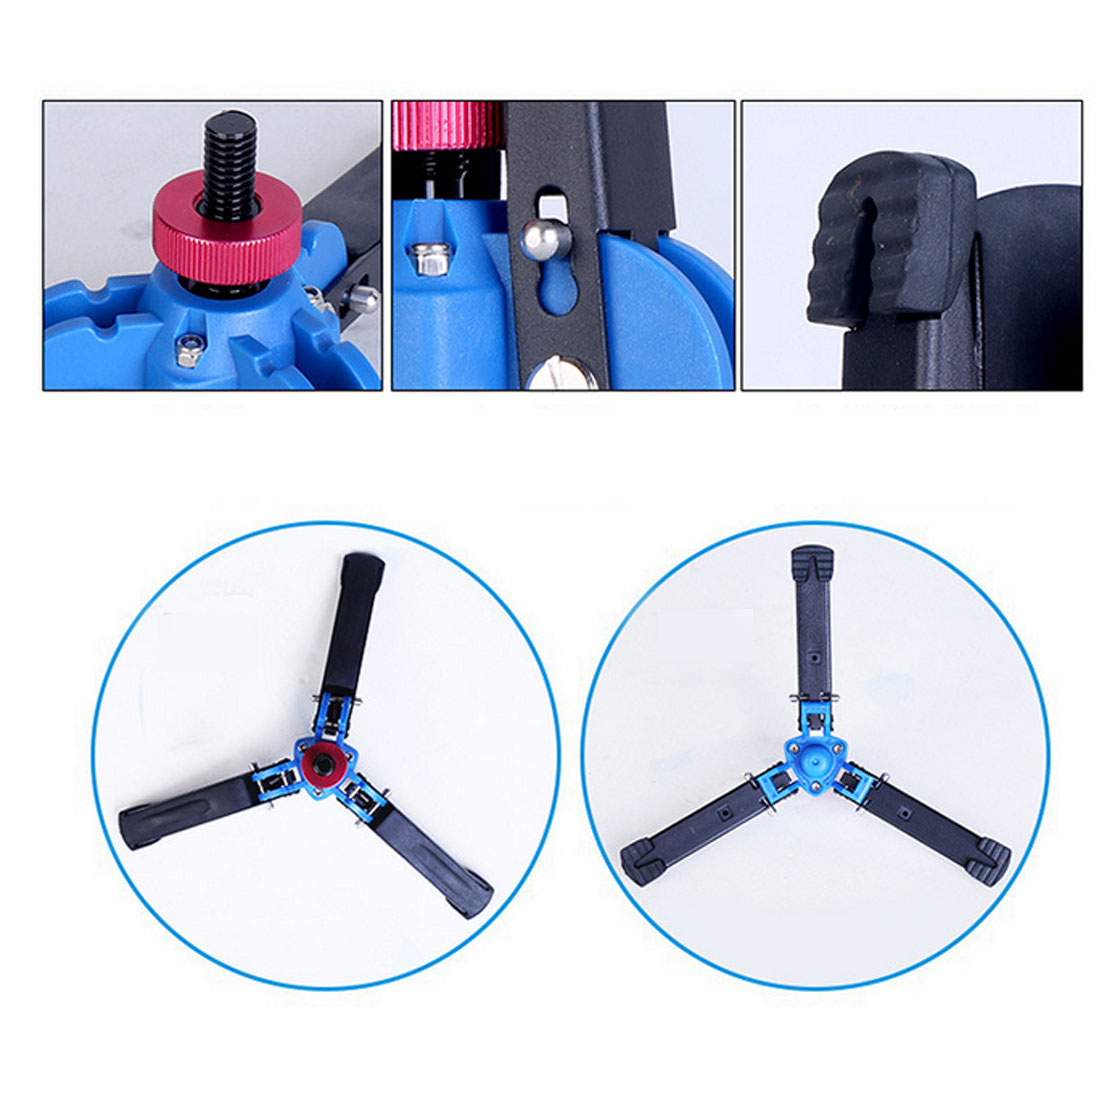 Purposeful Creative Universal Video Monopod Stand Base Monopod Tripod Manbily Mini Three Feet Support For Dslr Monopod With 3/8 Screw Live Tripods Live Equipment